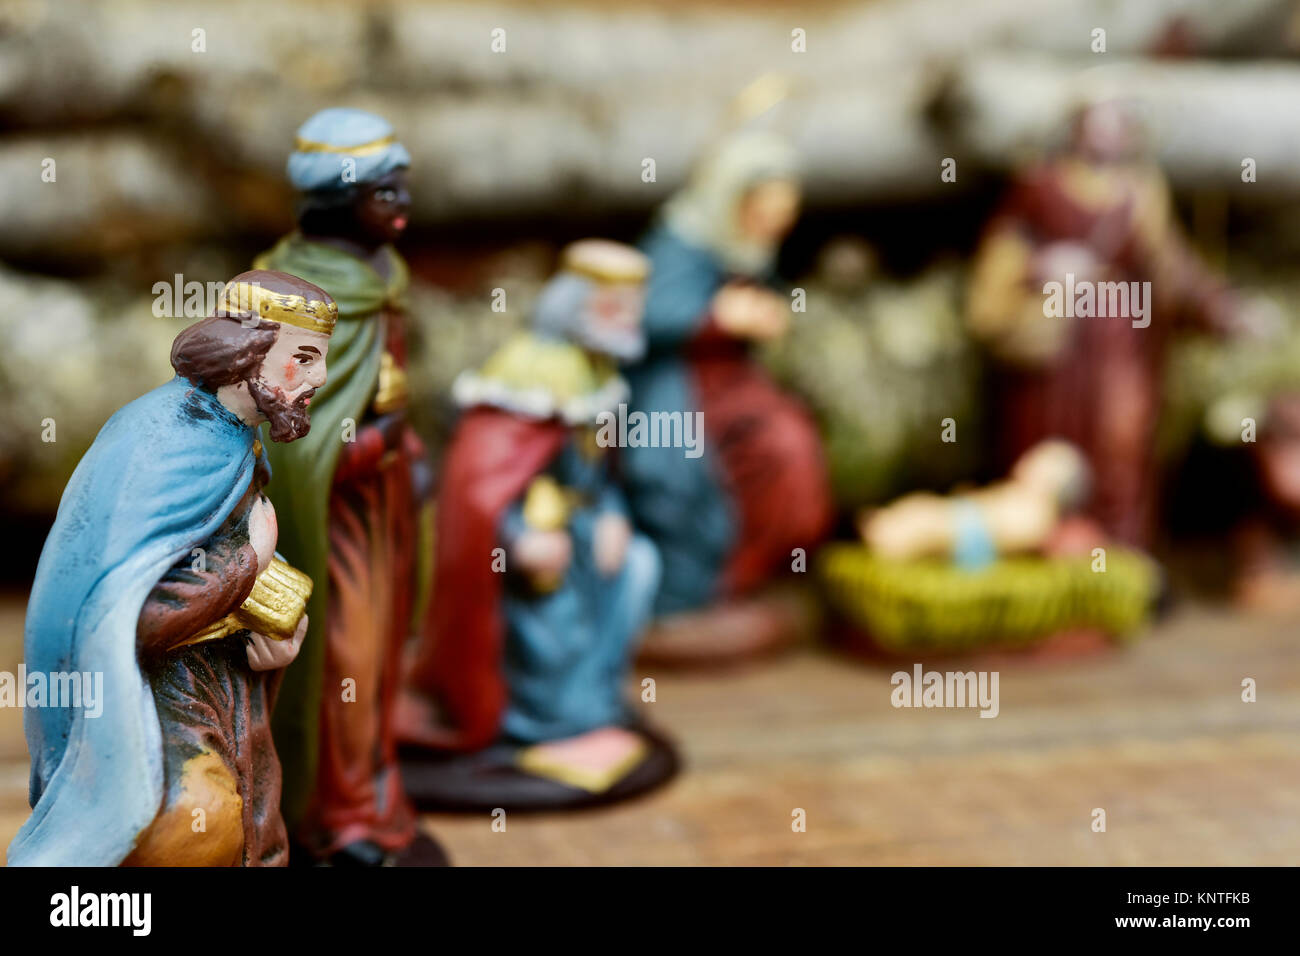 closeup of the three kings carrying their gifts adoring the Child Jesus on a rustic nativity scene - Stock Image